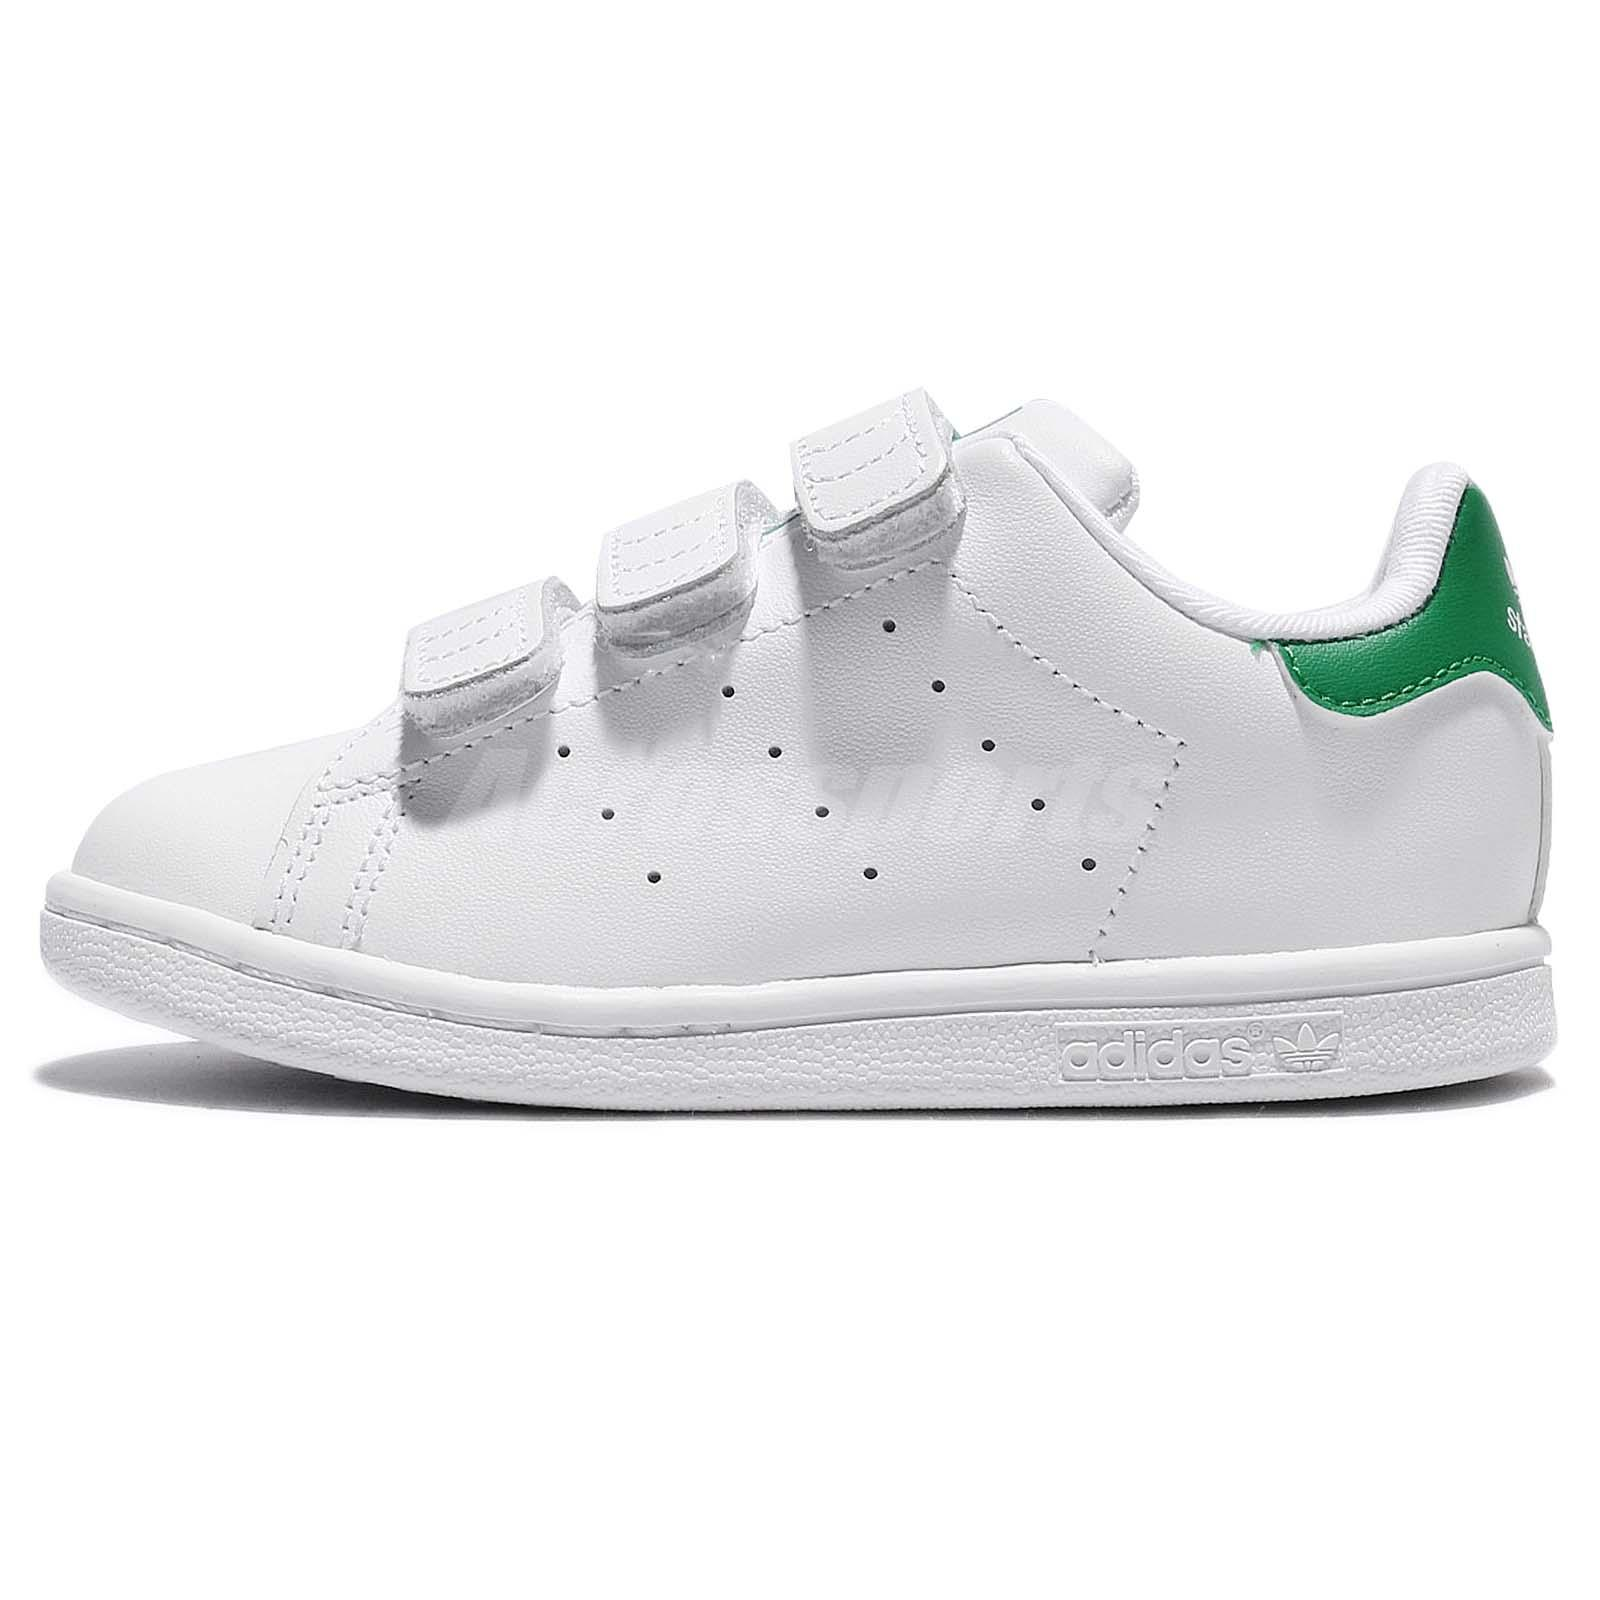 timeless design 7b299 78861 adidas Stan Smith CF I White Green Leather Infant Toddler Baby Shoe BZ0520